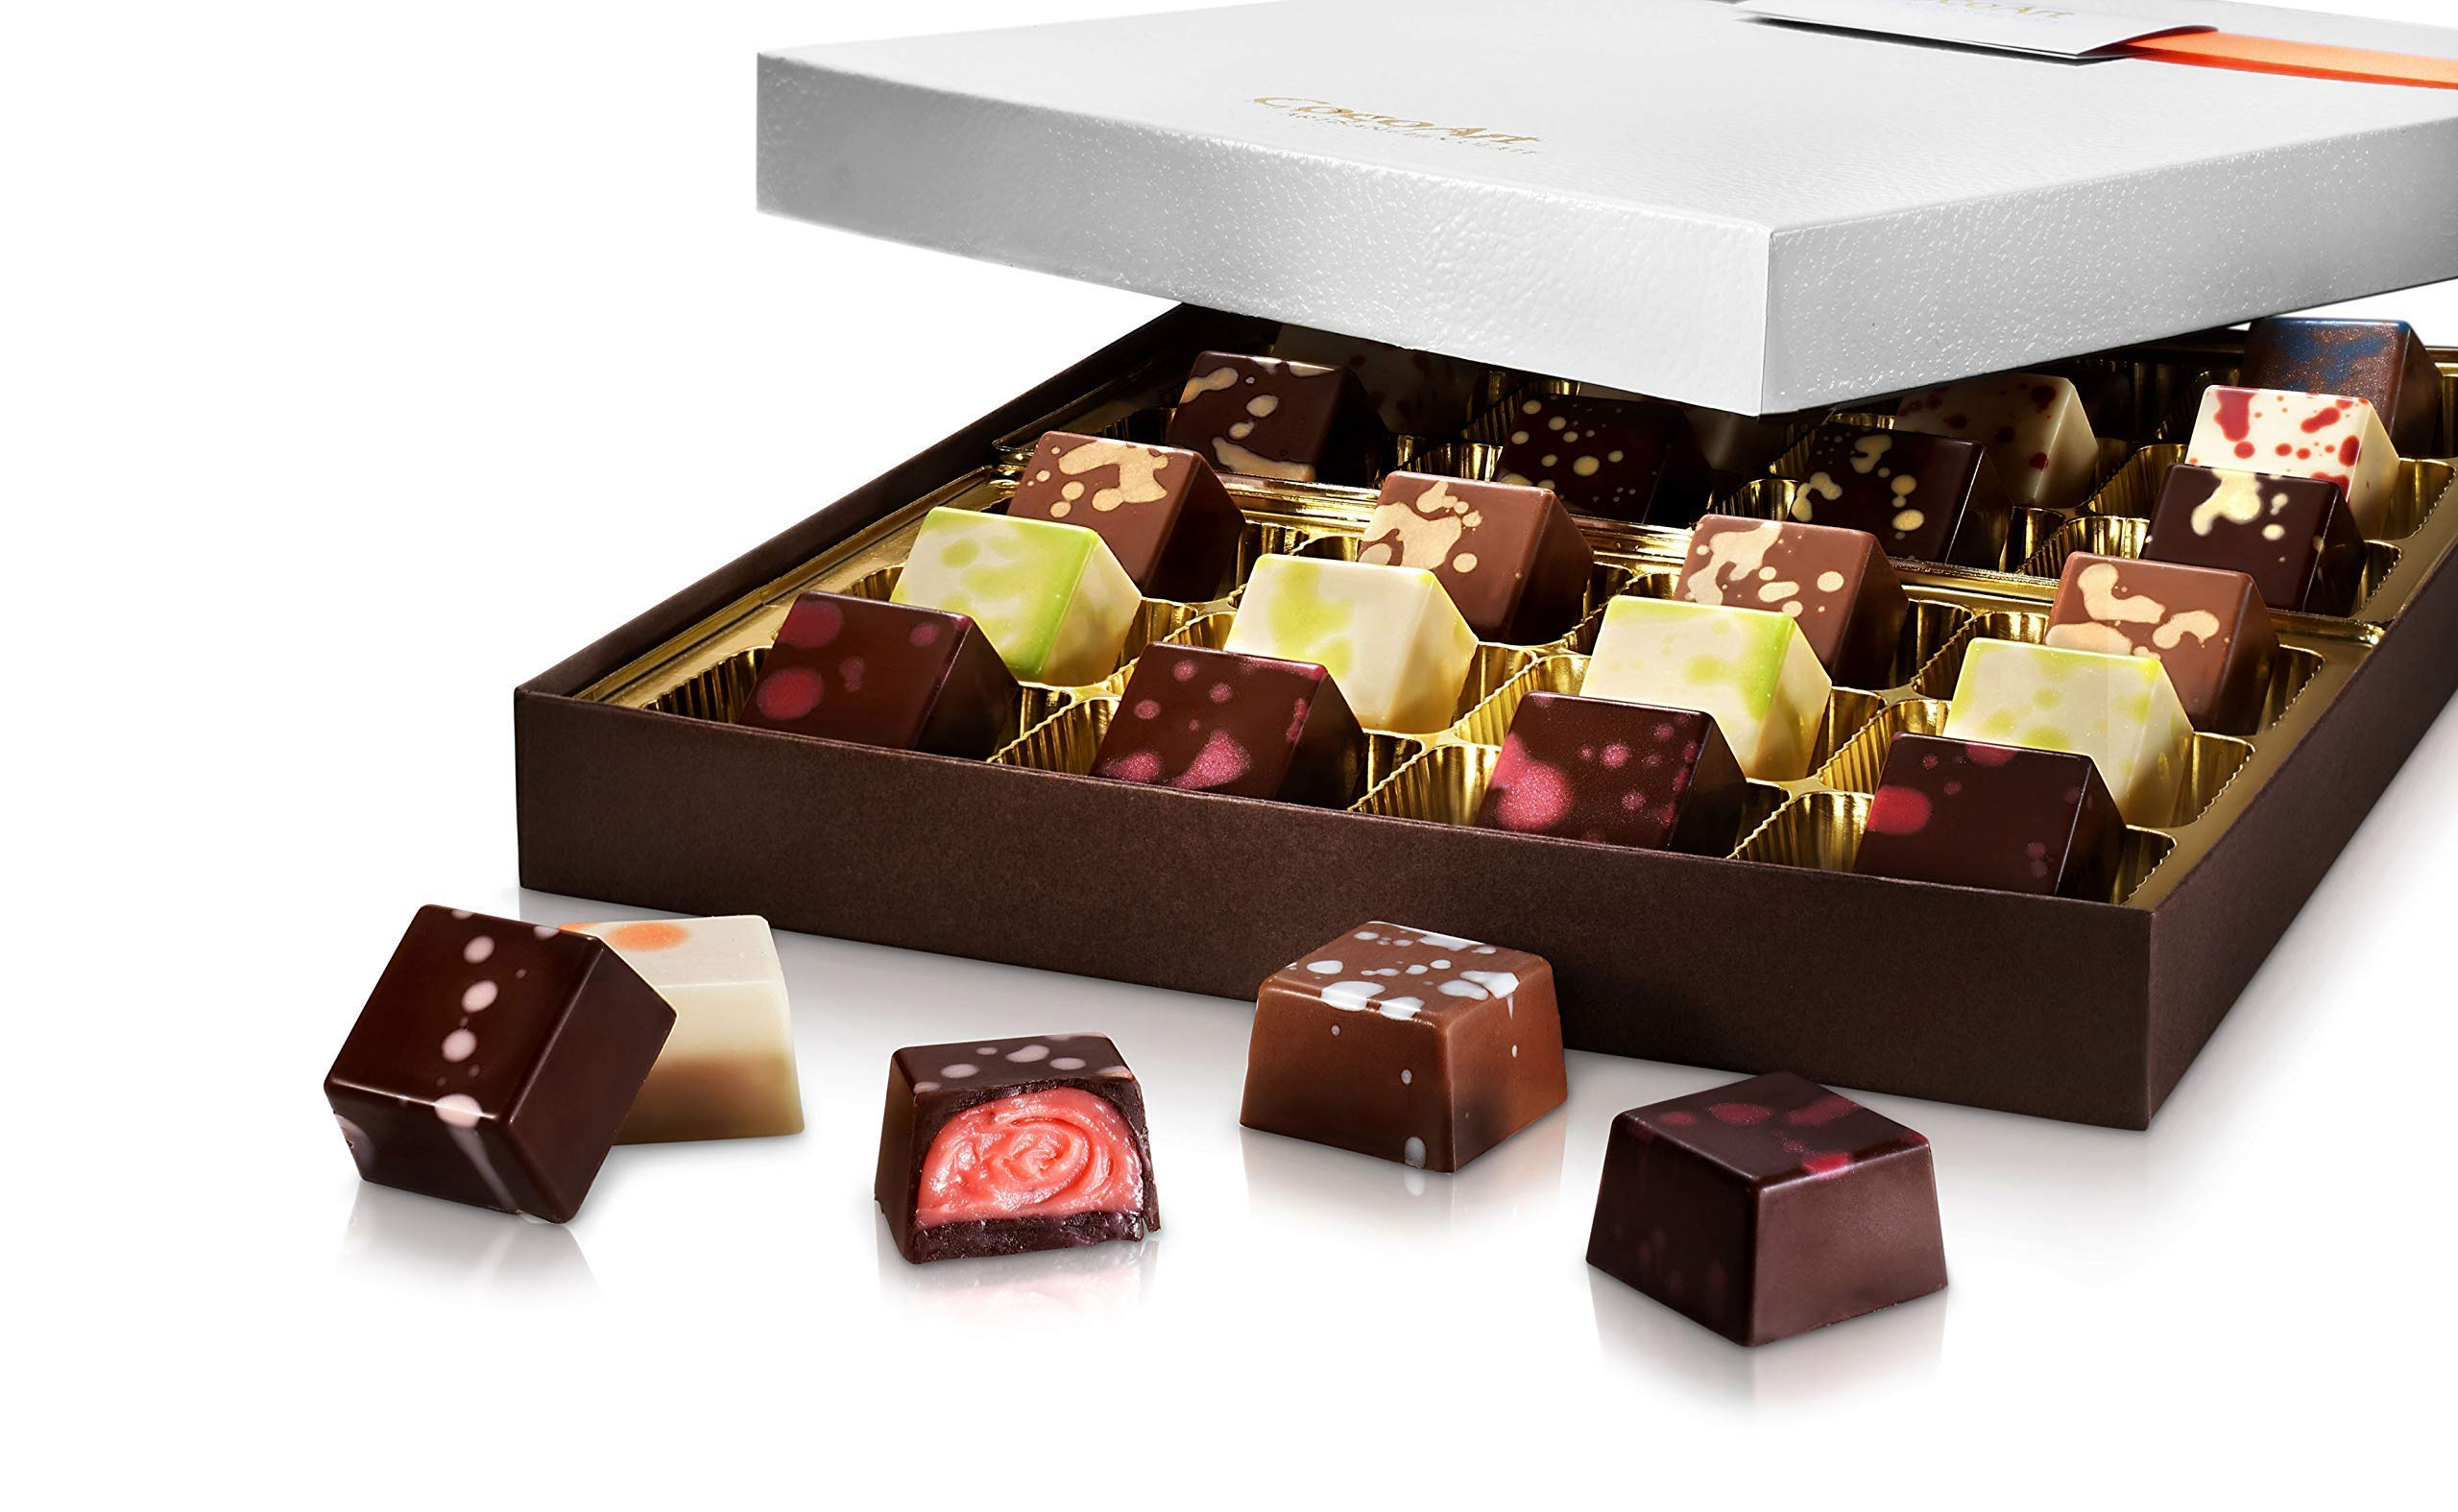 CocoArt Gourmet Artisan Chocolate Truffle Assortment Gift Box for All Occasion, 24 Pieces